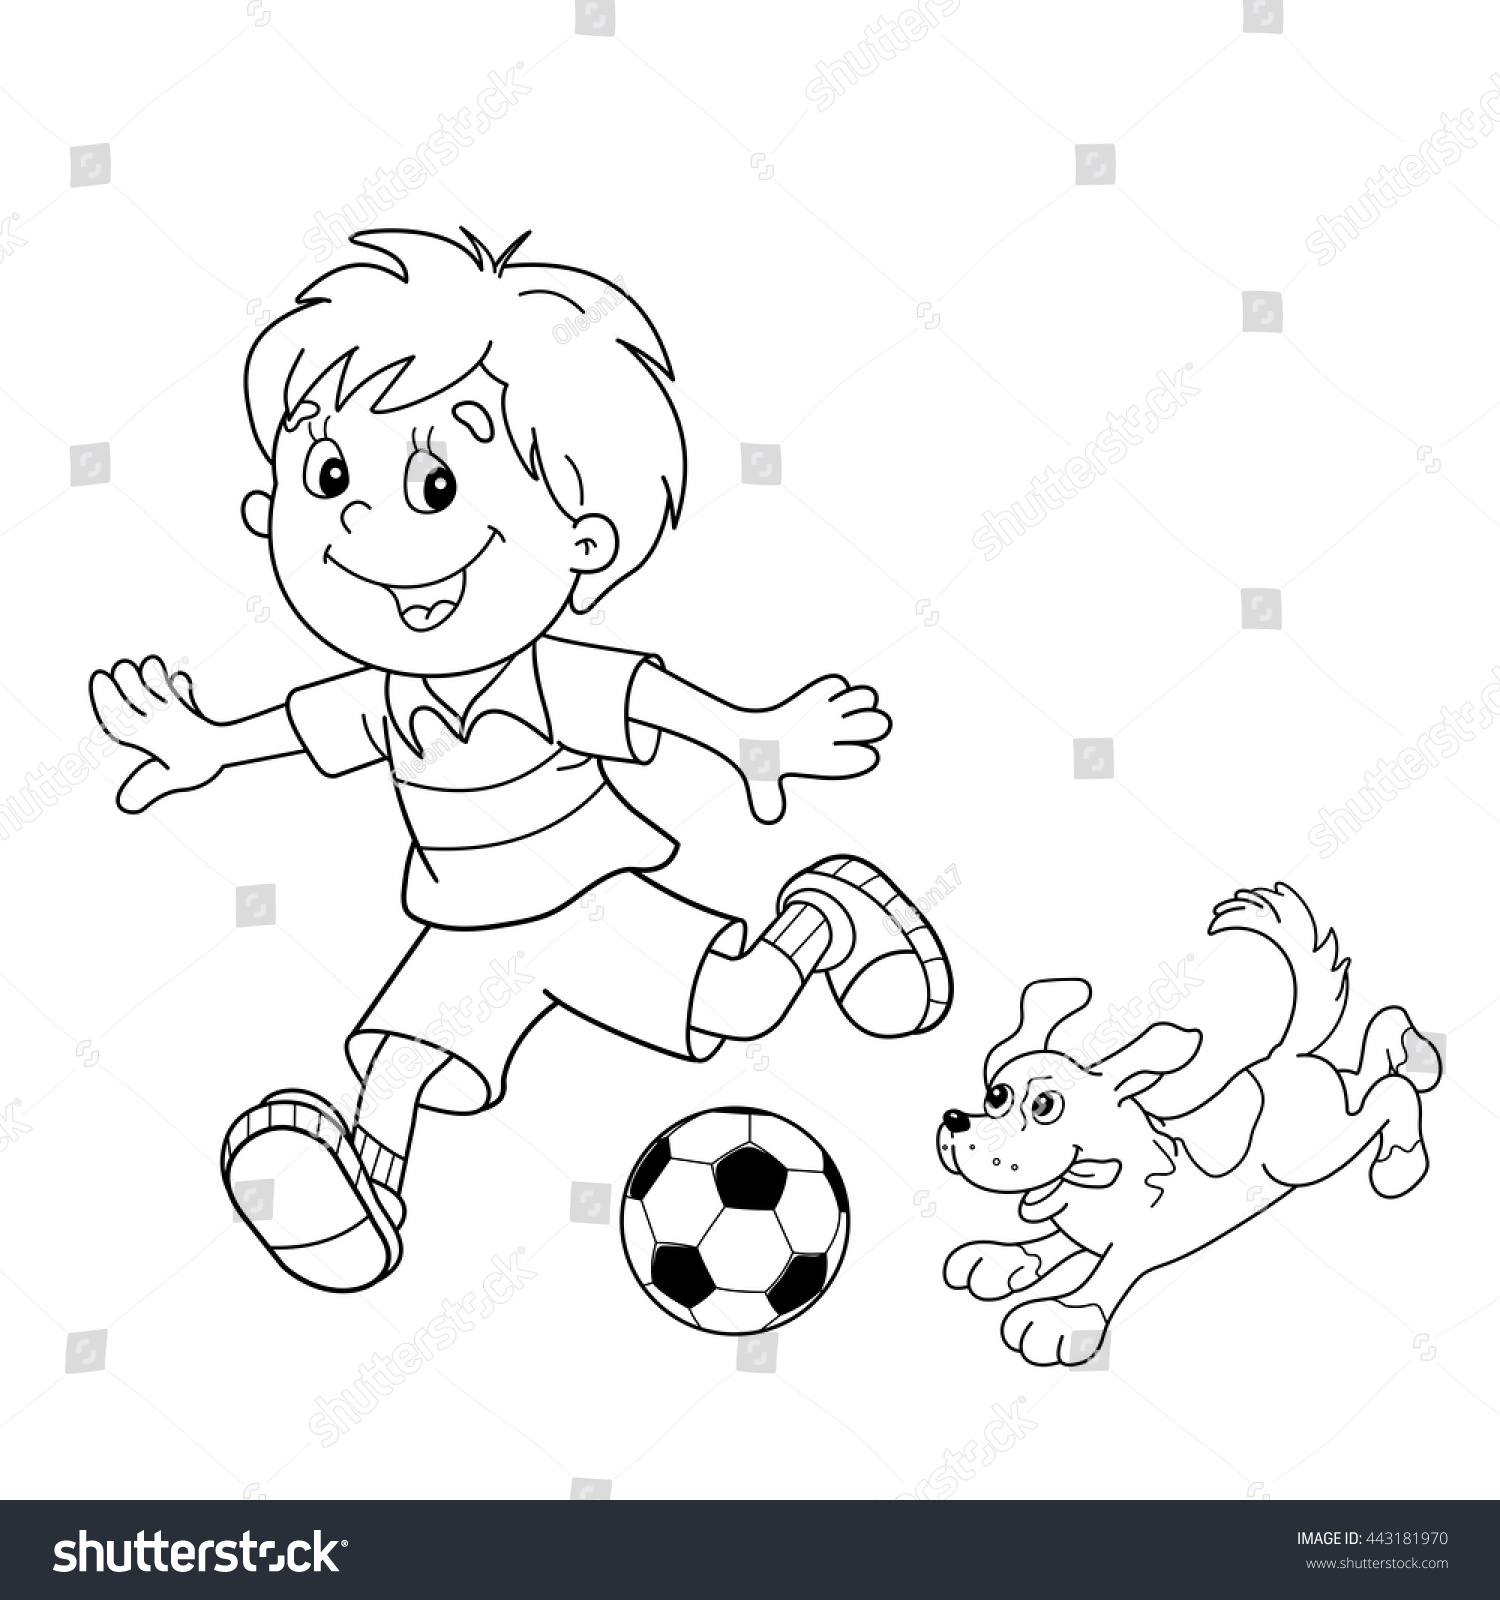 Royalty free Coloring Page Outline cartoon boy…